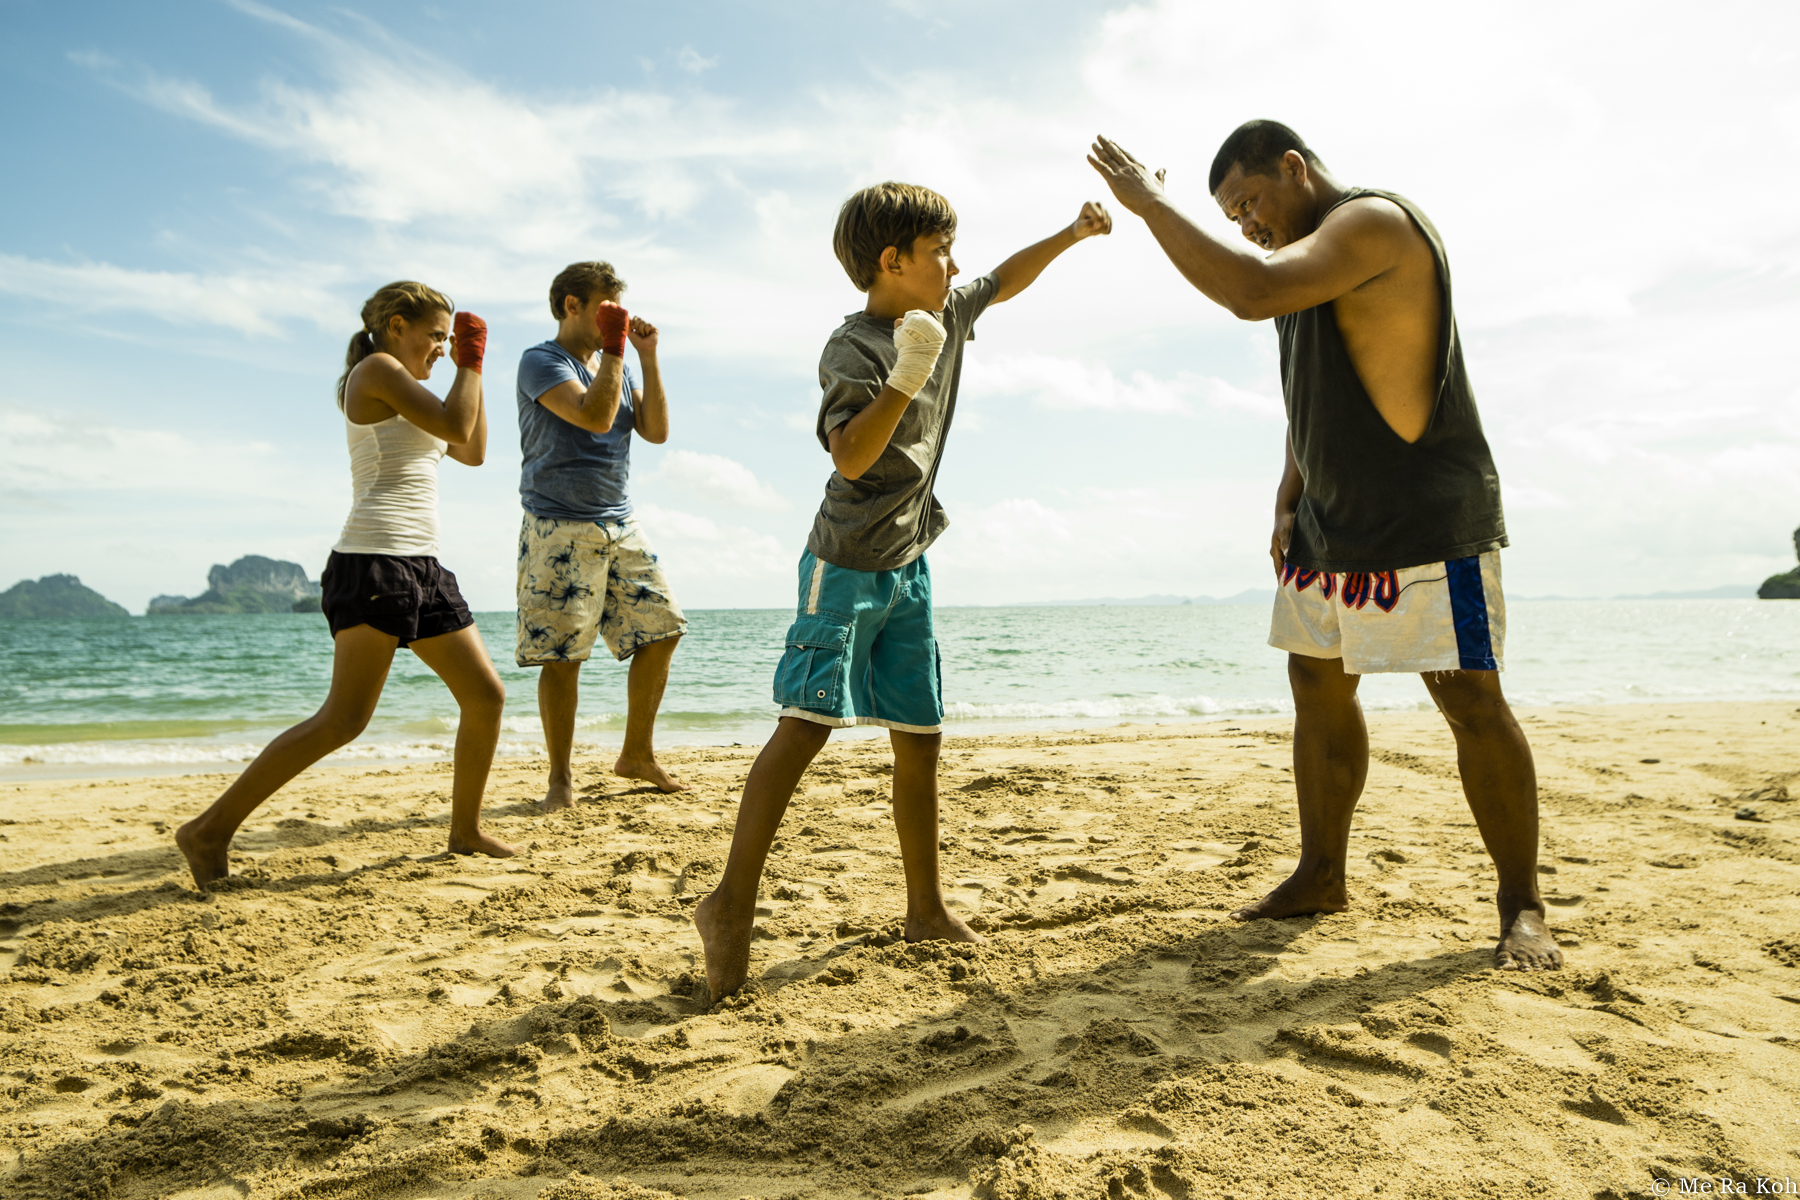 photo of people boxing on the beach by Me Ra Koh